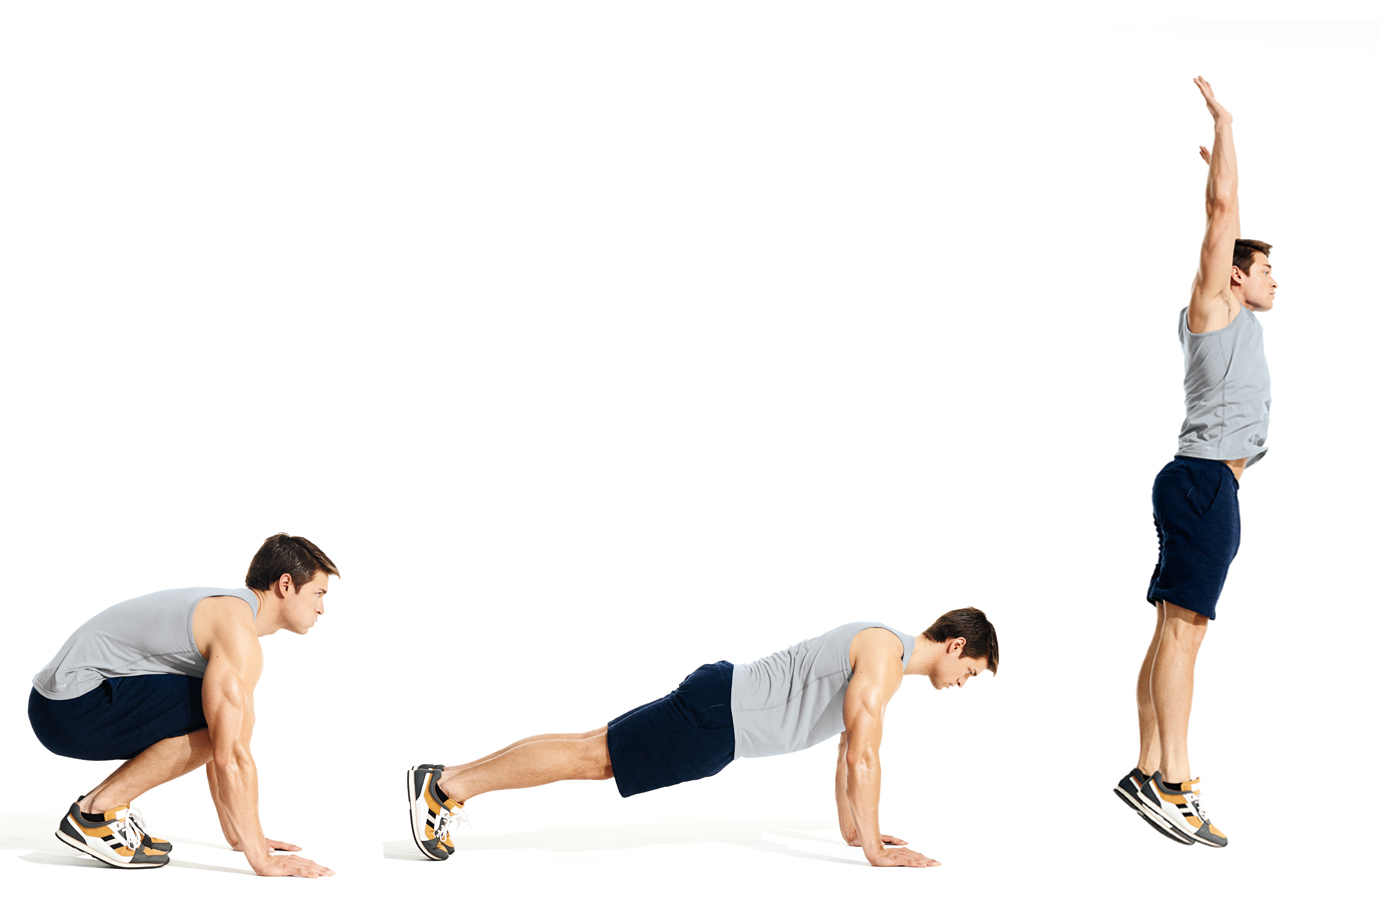 The Burpee Workout Thatll Shred Fat Fast